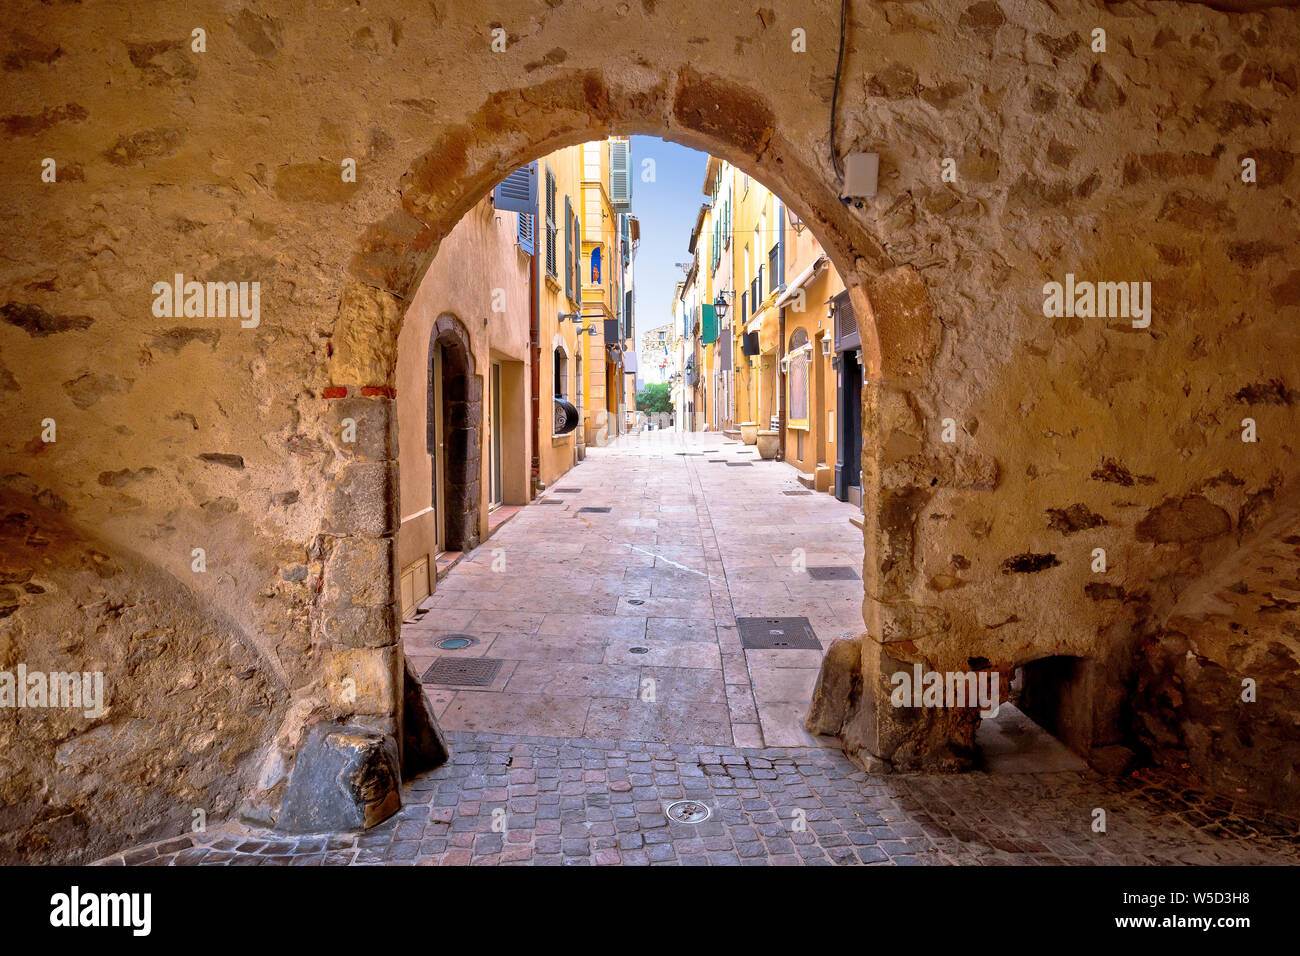 Saint Tropez historic town gate and colorful street view, tourist destination of French riviera Stock Photo